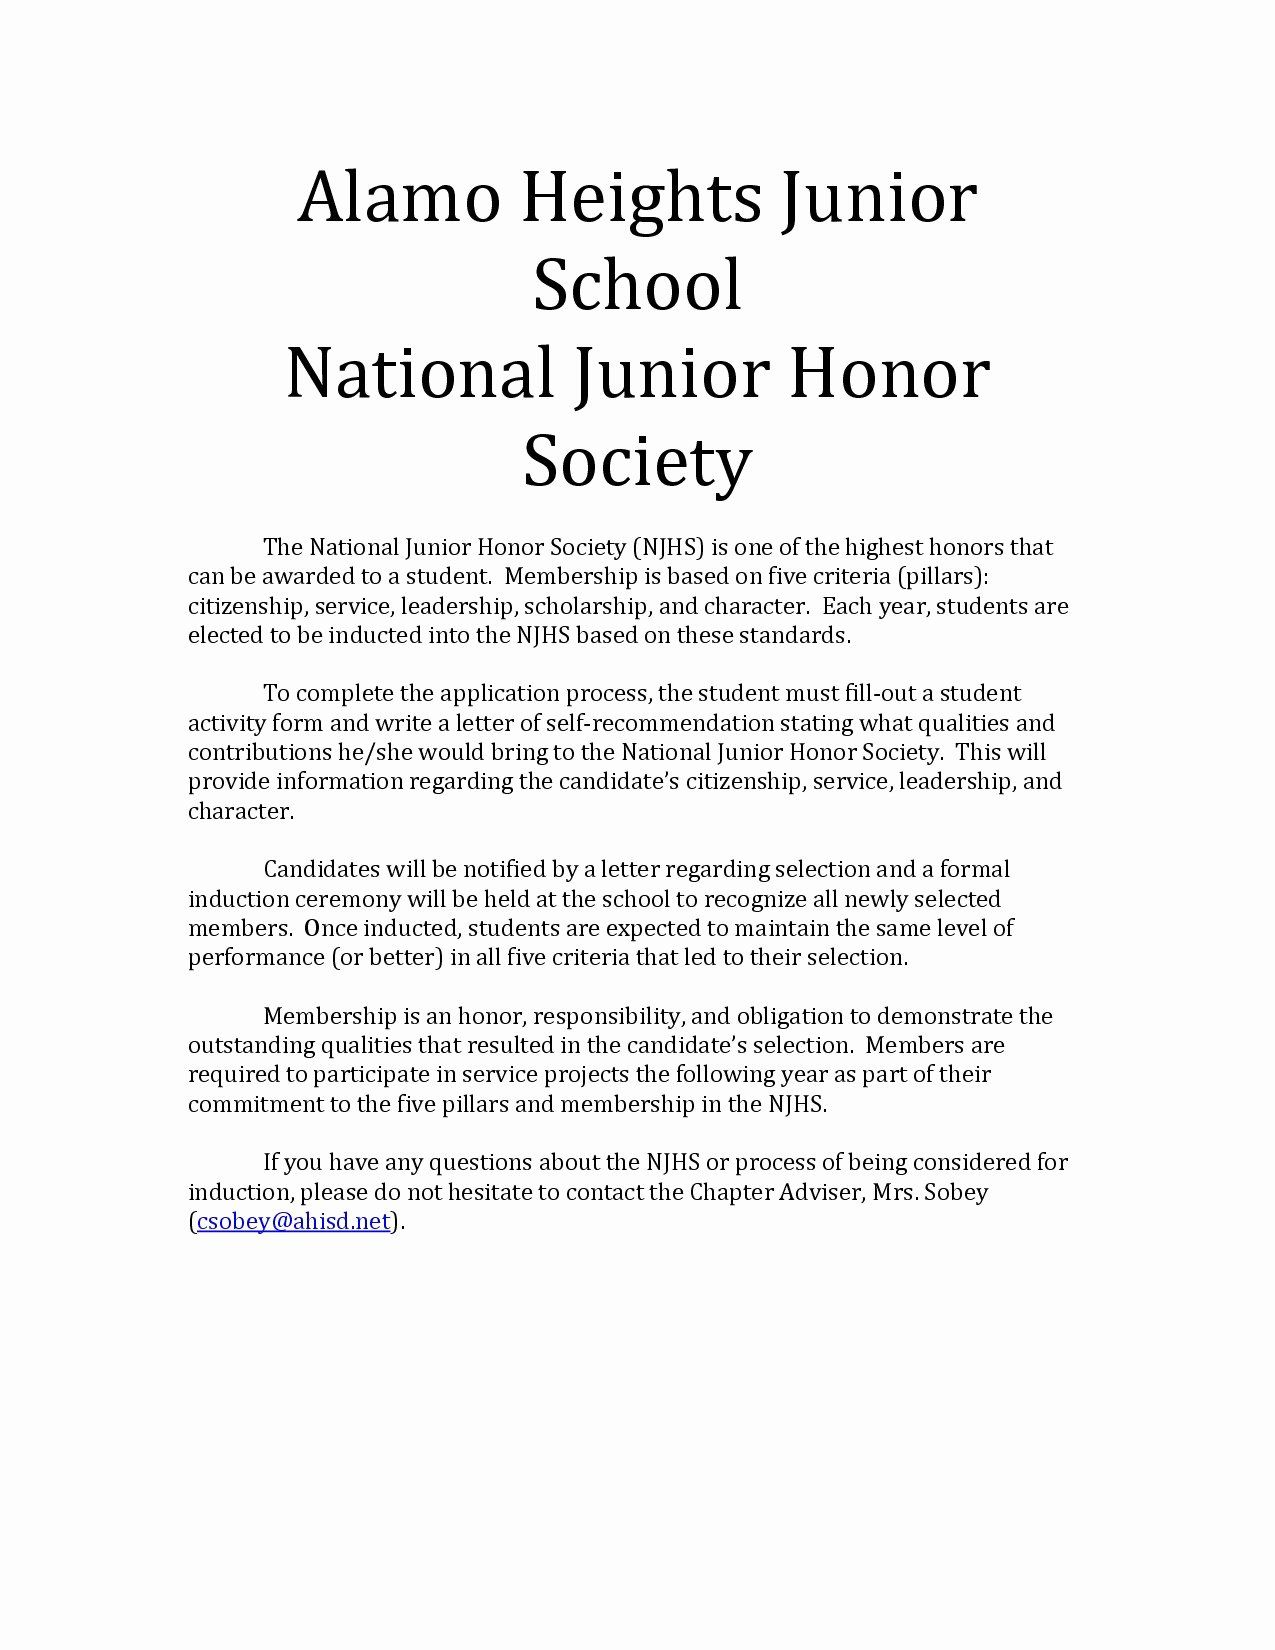 30 Letter for Honor society in 2020